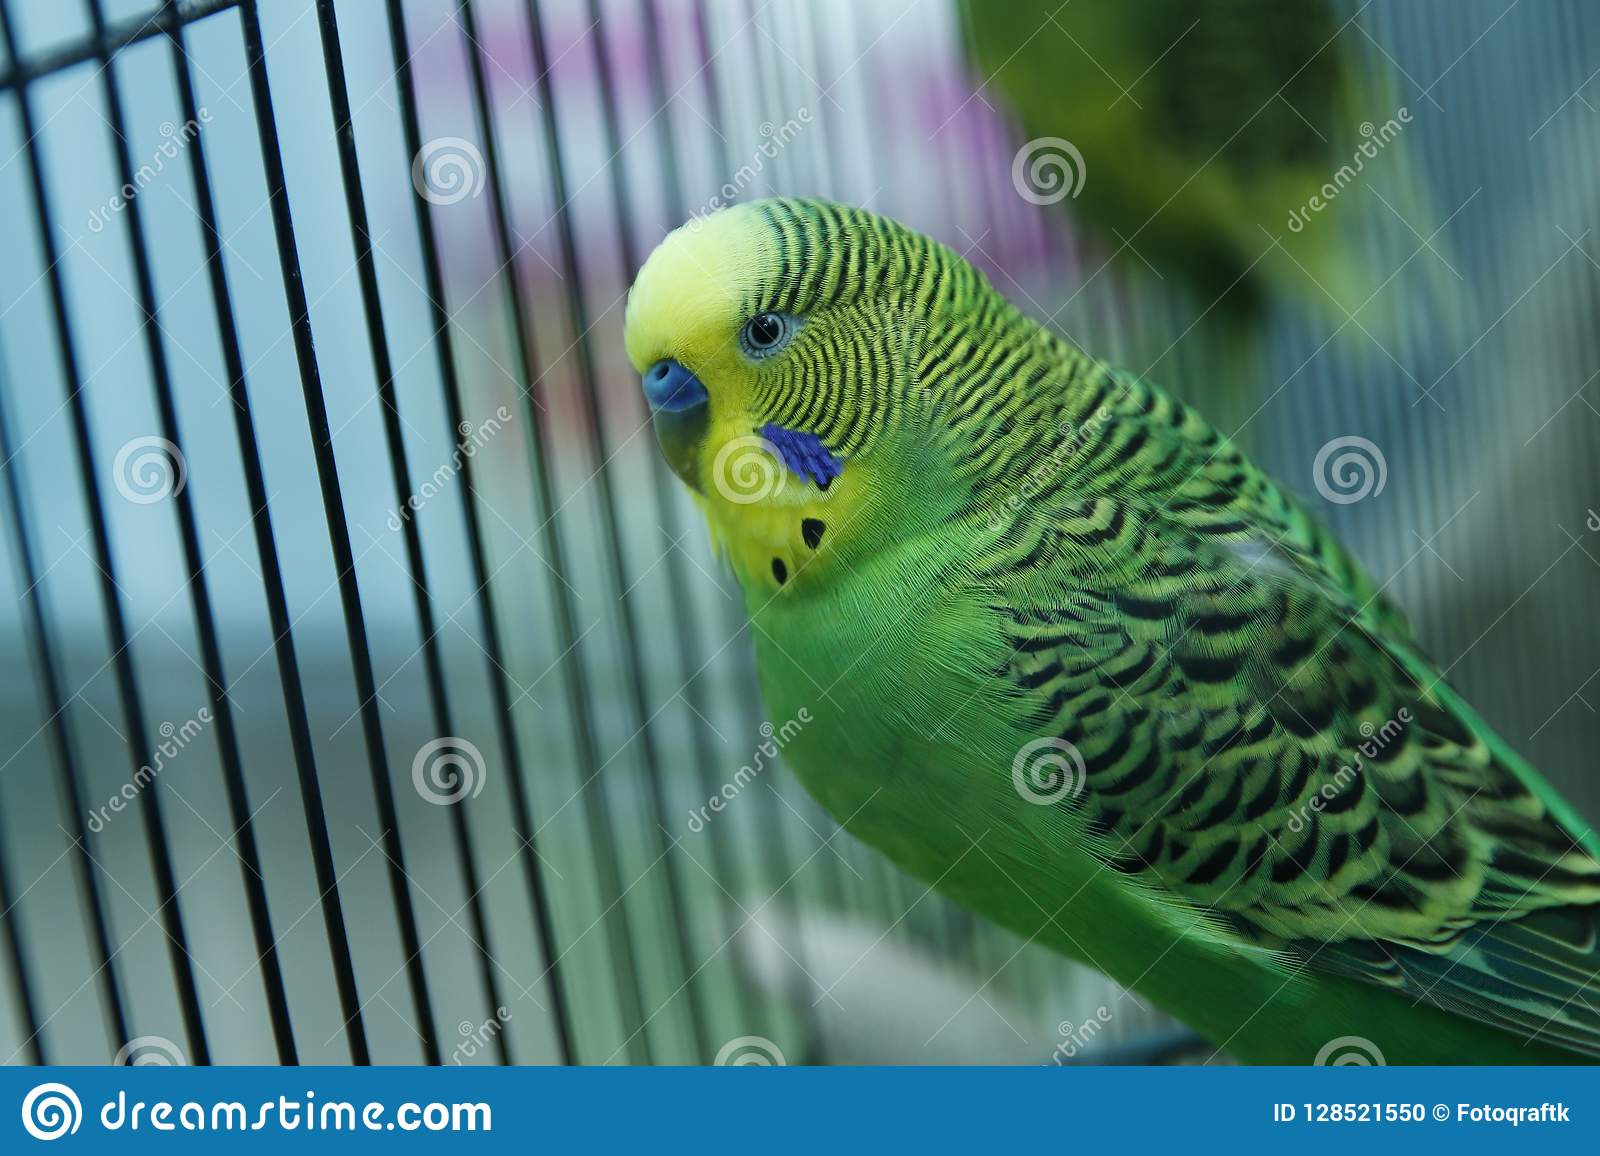 Parakeets Green Wavy Parrot Sits In A Cage Rosy Faced Lovebird Parrot In A Cage Birds Inseparable Budgerigar On The Cage